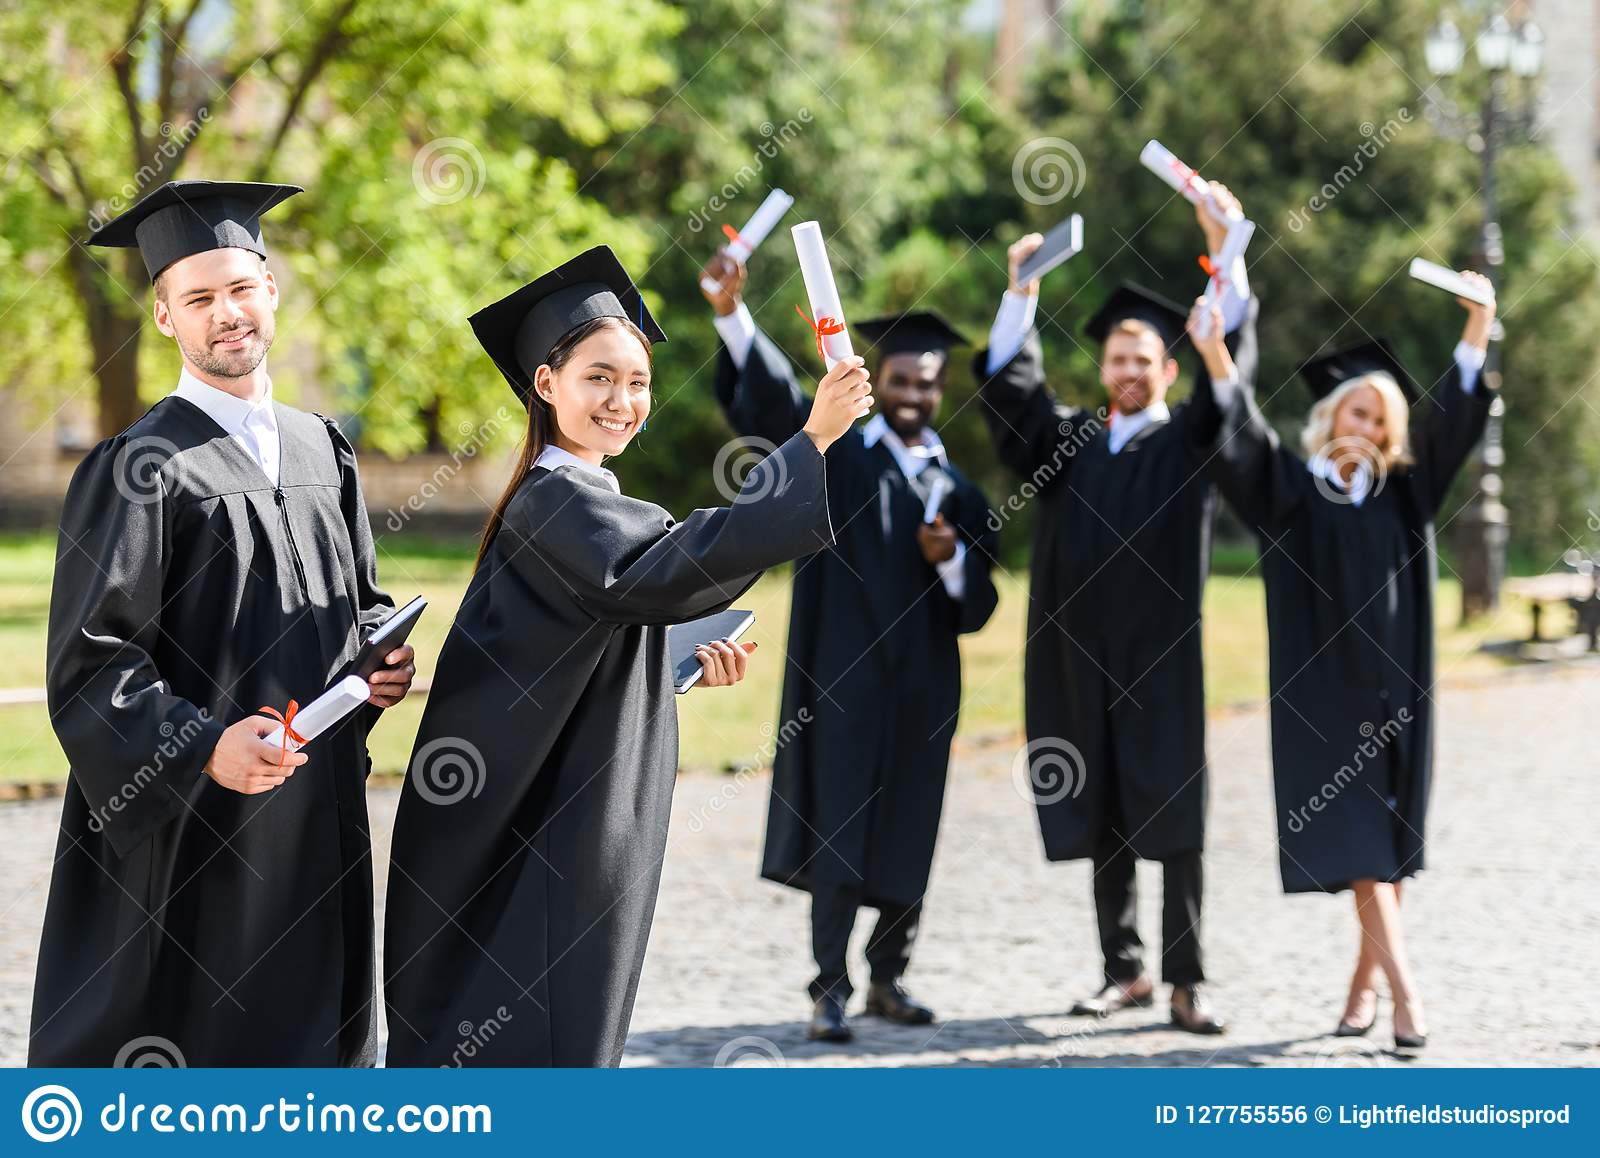 young graduated students standing together in university garden and looking